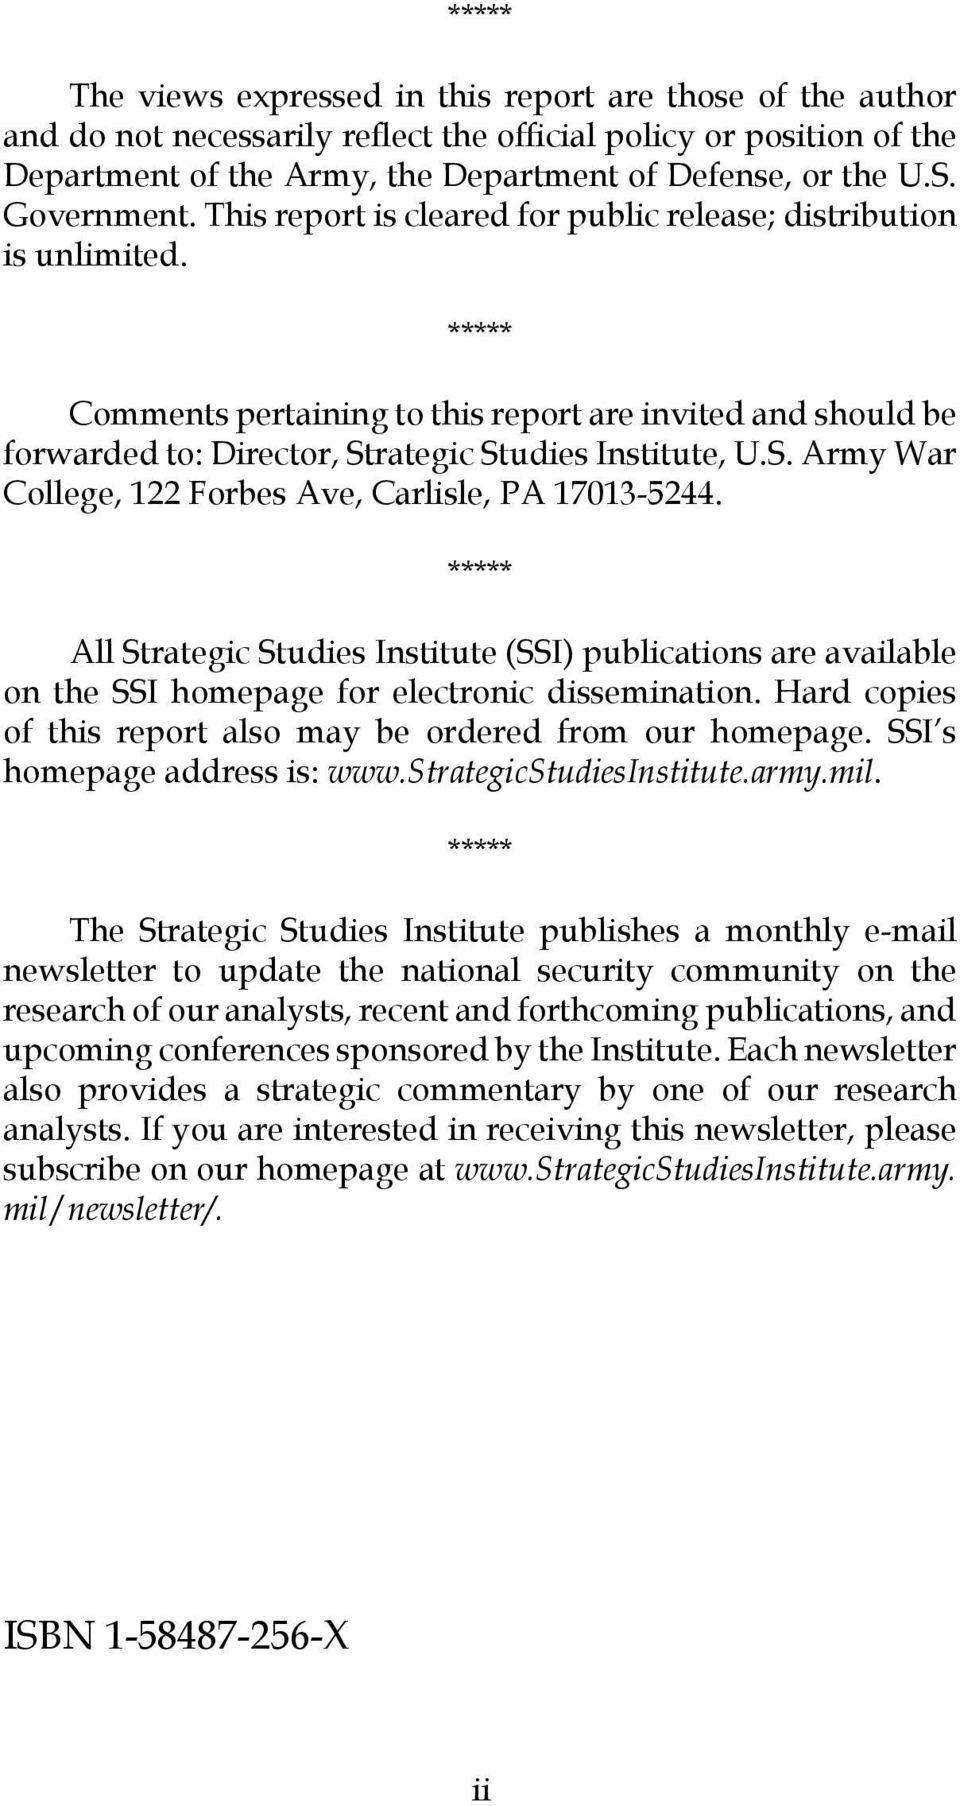 ***** Comments pertaining to this report are invited and should be forwarded to: Director, Strategic Studies Institute, U.S. Army War College, 122 Forbes Ave, Carlisle, PA 17013-5244.